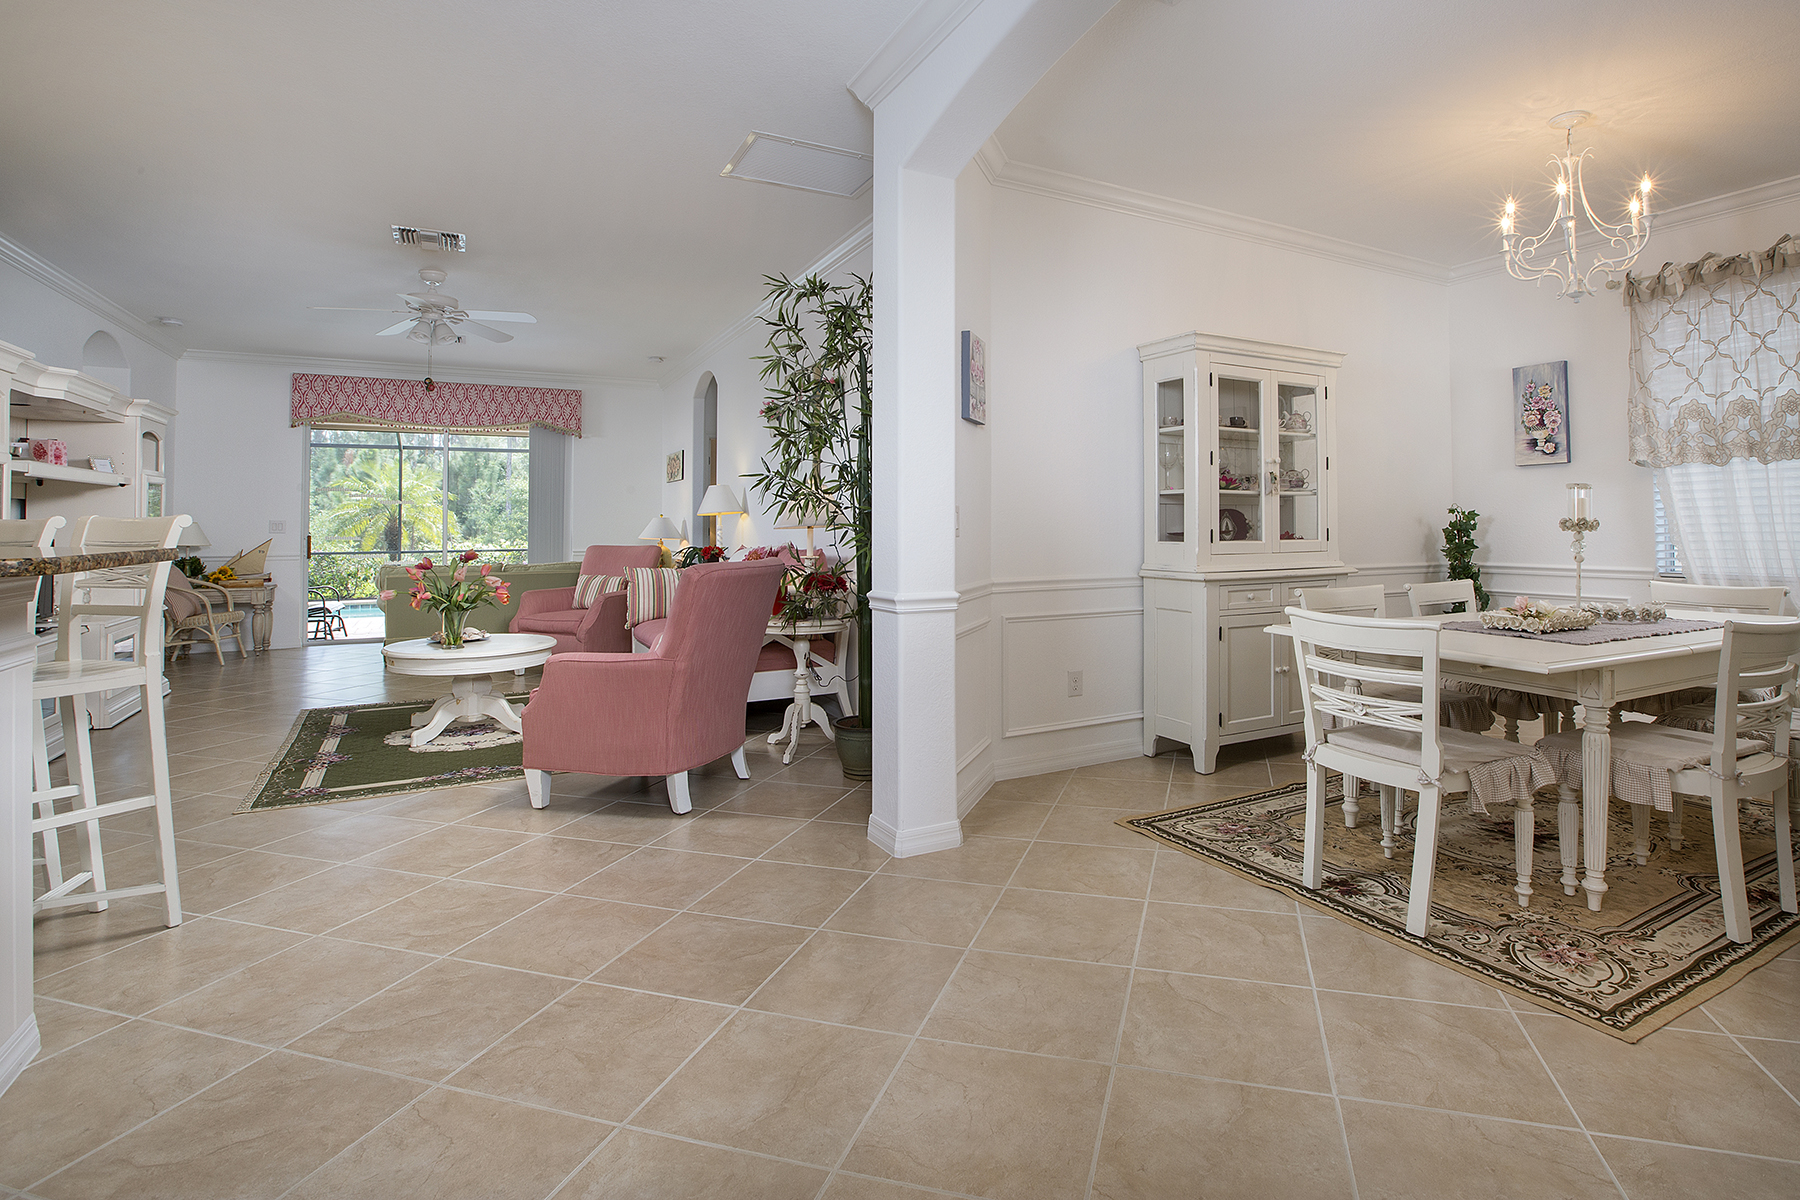 Additional photo for property listing at HAWTHORNE - EMORY OAKS 10448  Yorkstone Dr,  Bonita Springs, Florida 34135 United States